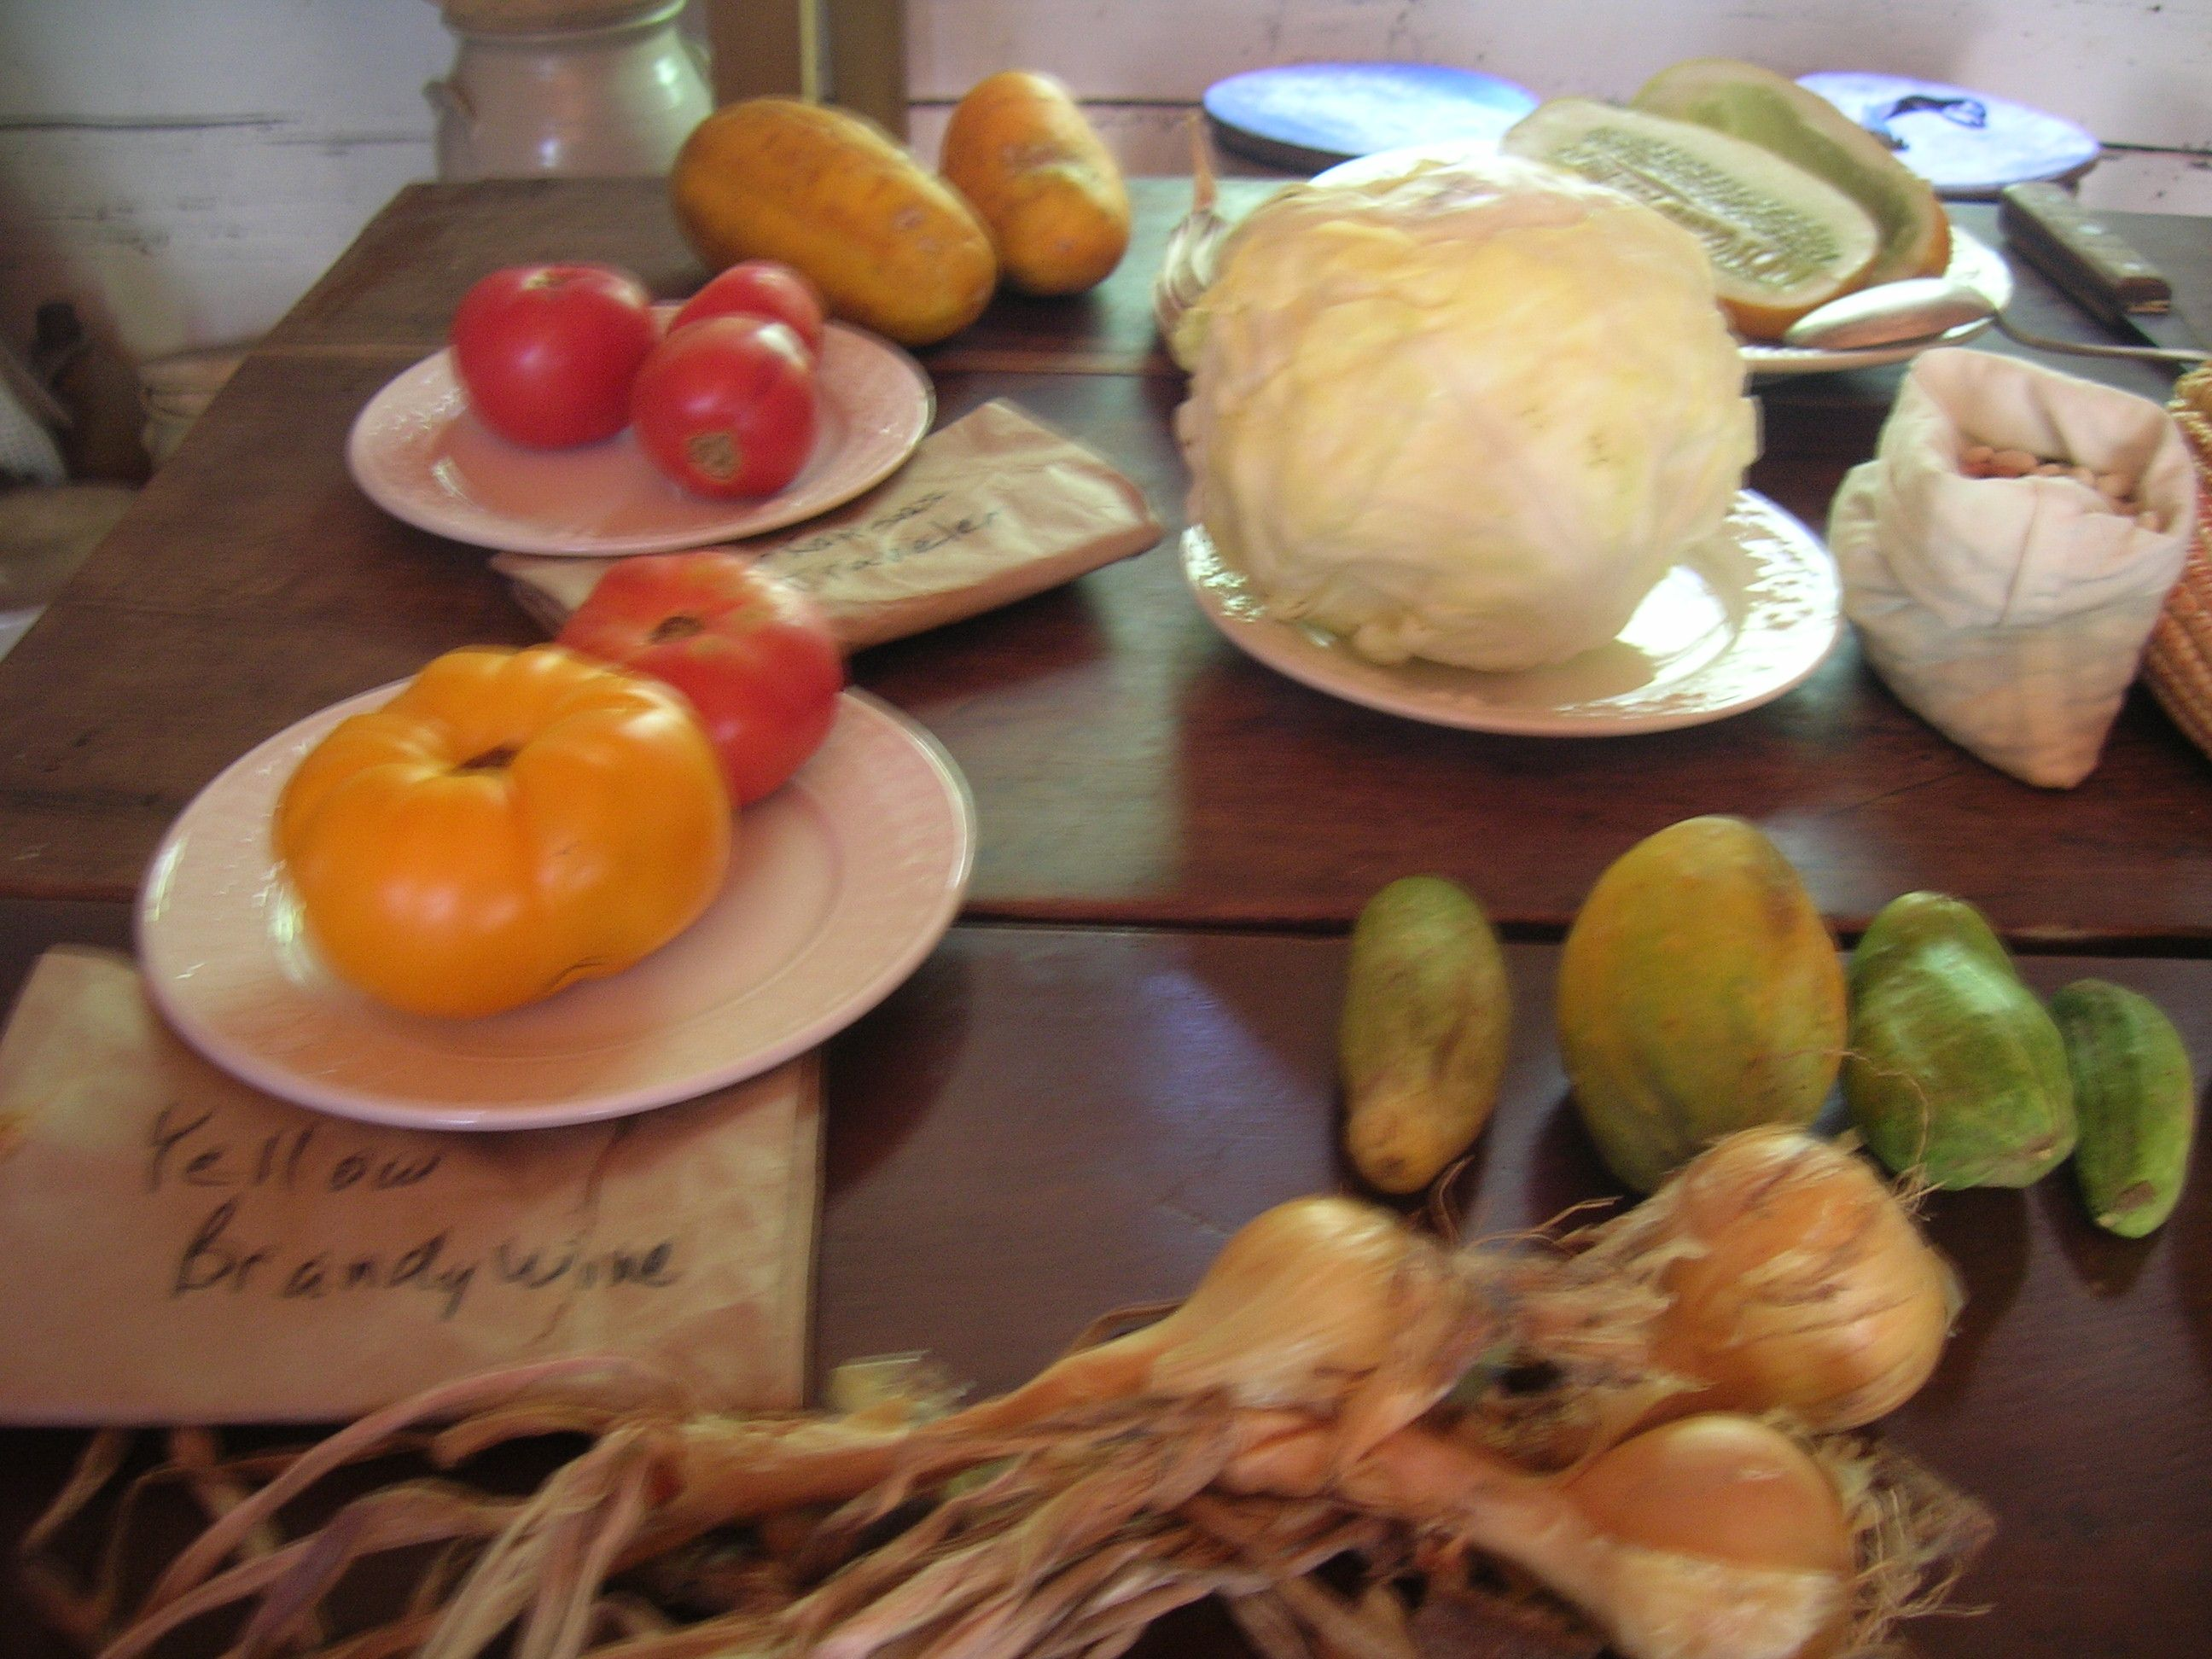 Summer harvest historic food preservation recipes in the homeplace historic food preservation recipes in the homeplace history and receipt book history folklore and recipes from life on a upper southern farm a decade forumfinder Gallery